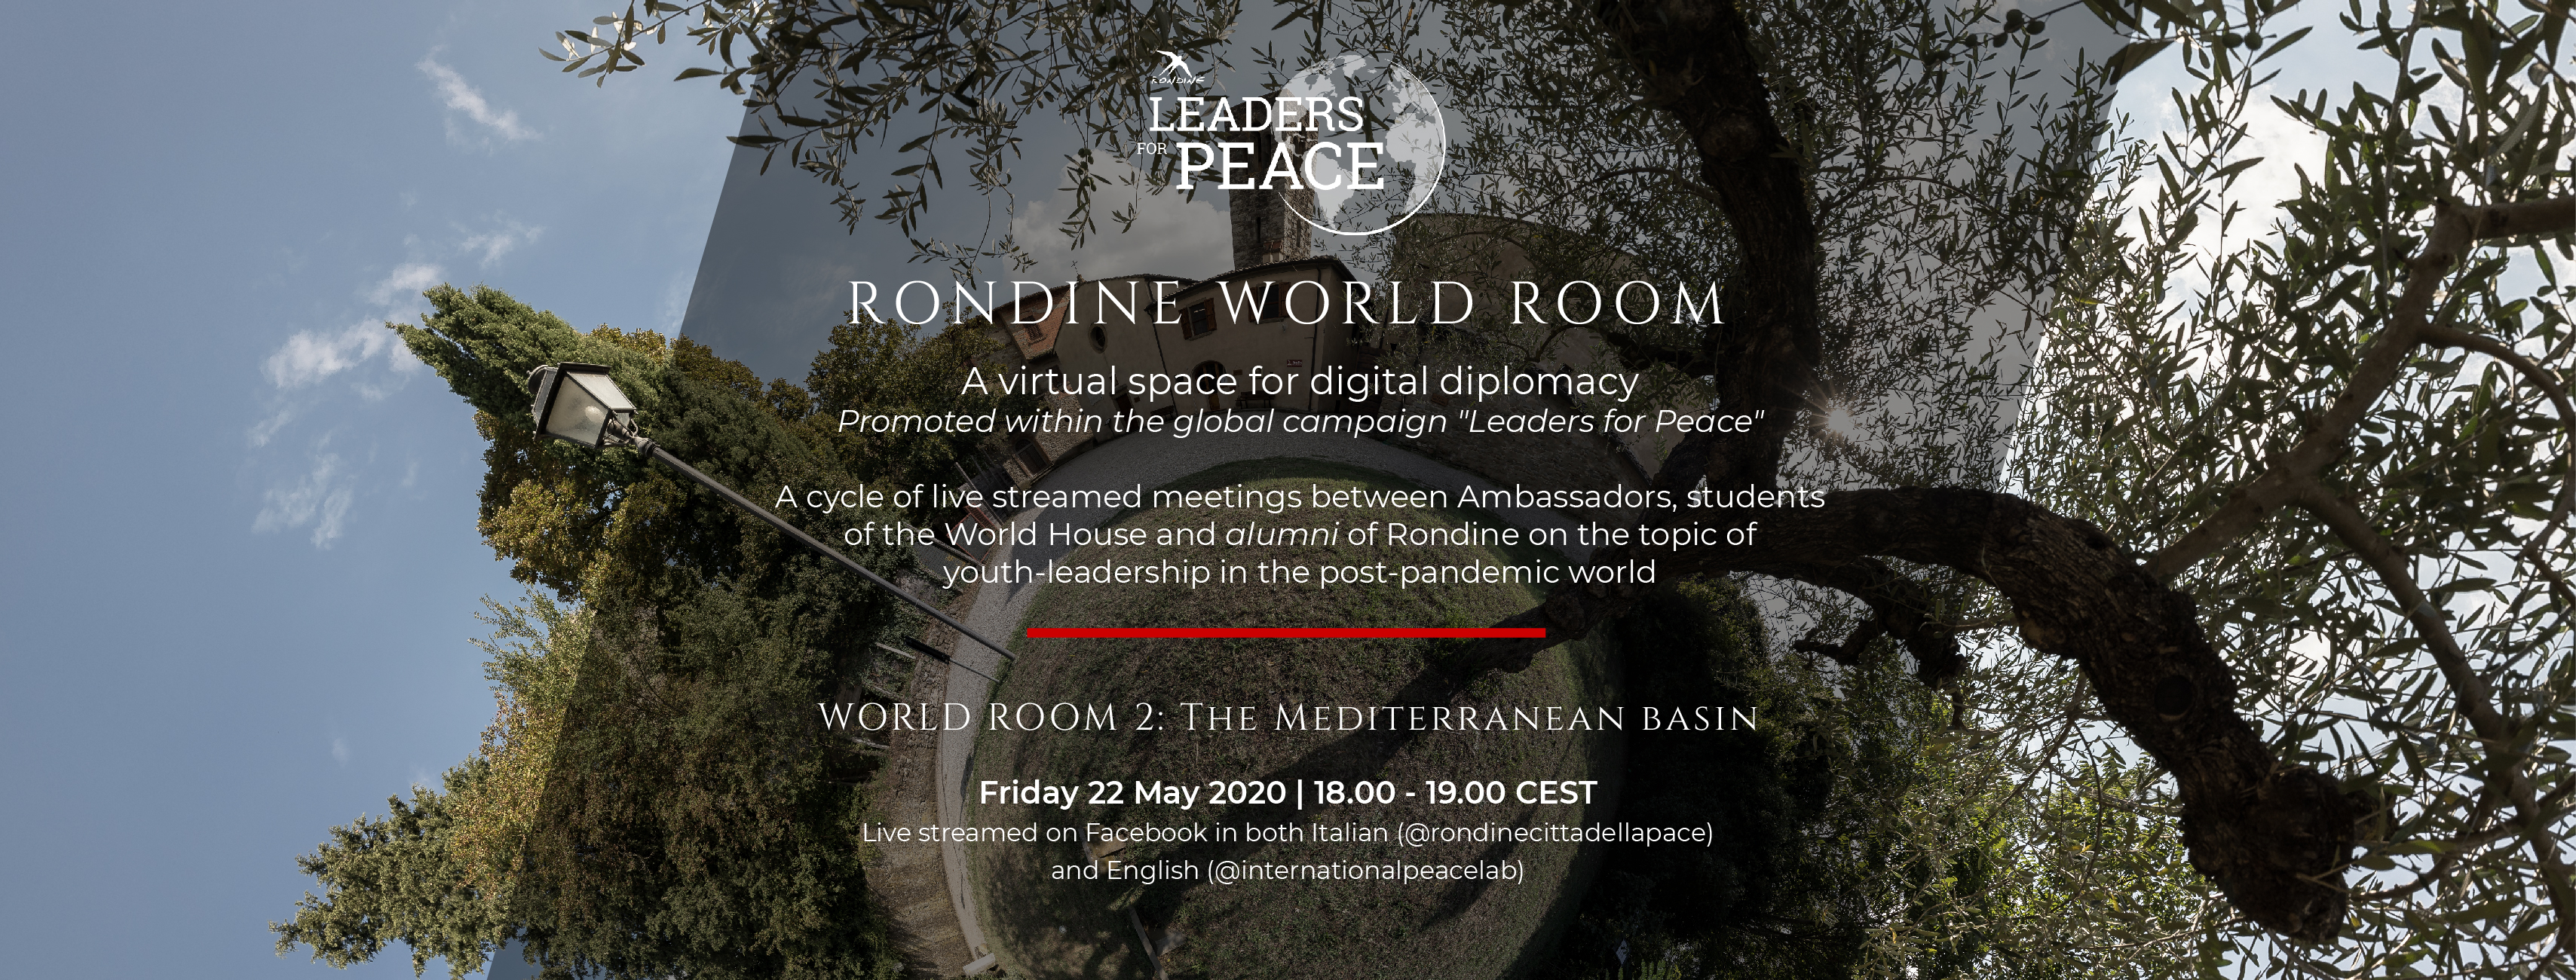 Rondine World Room, second round: a focus on the Mediterranean